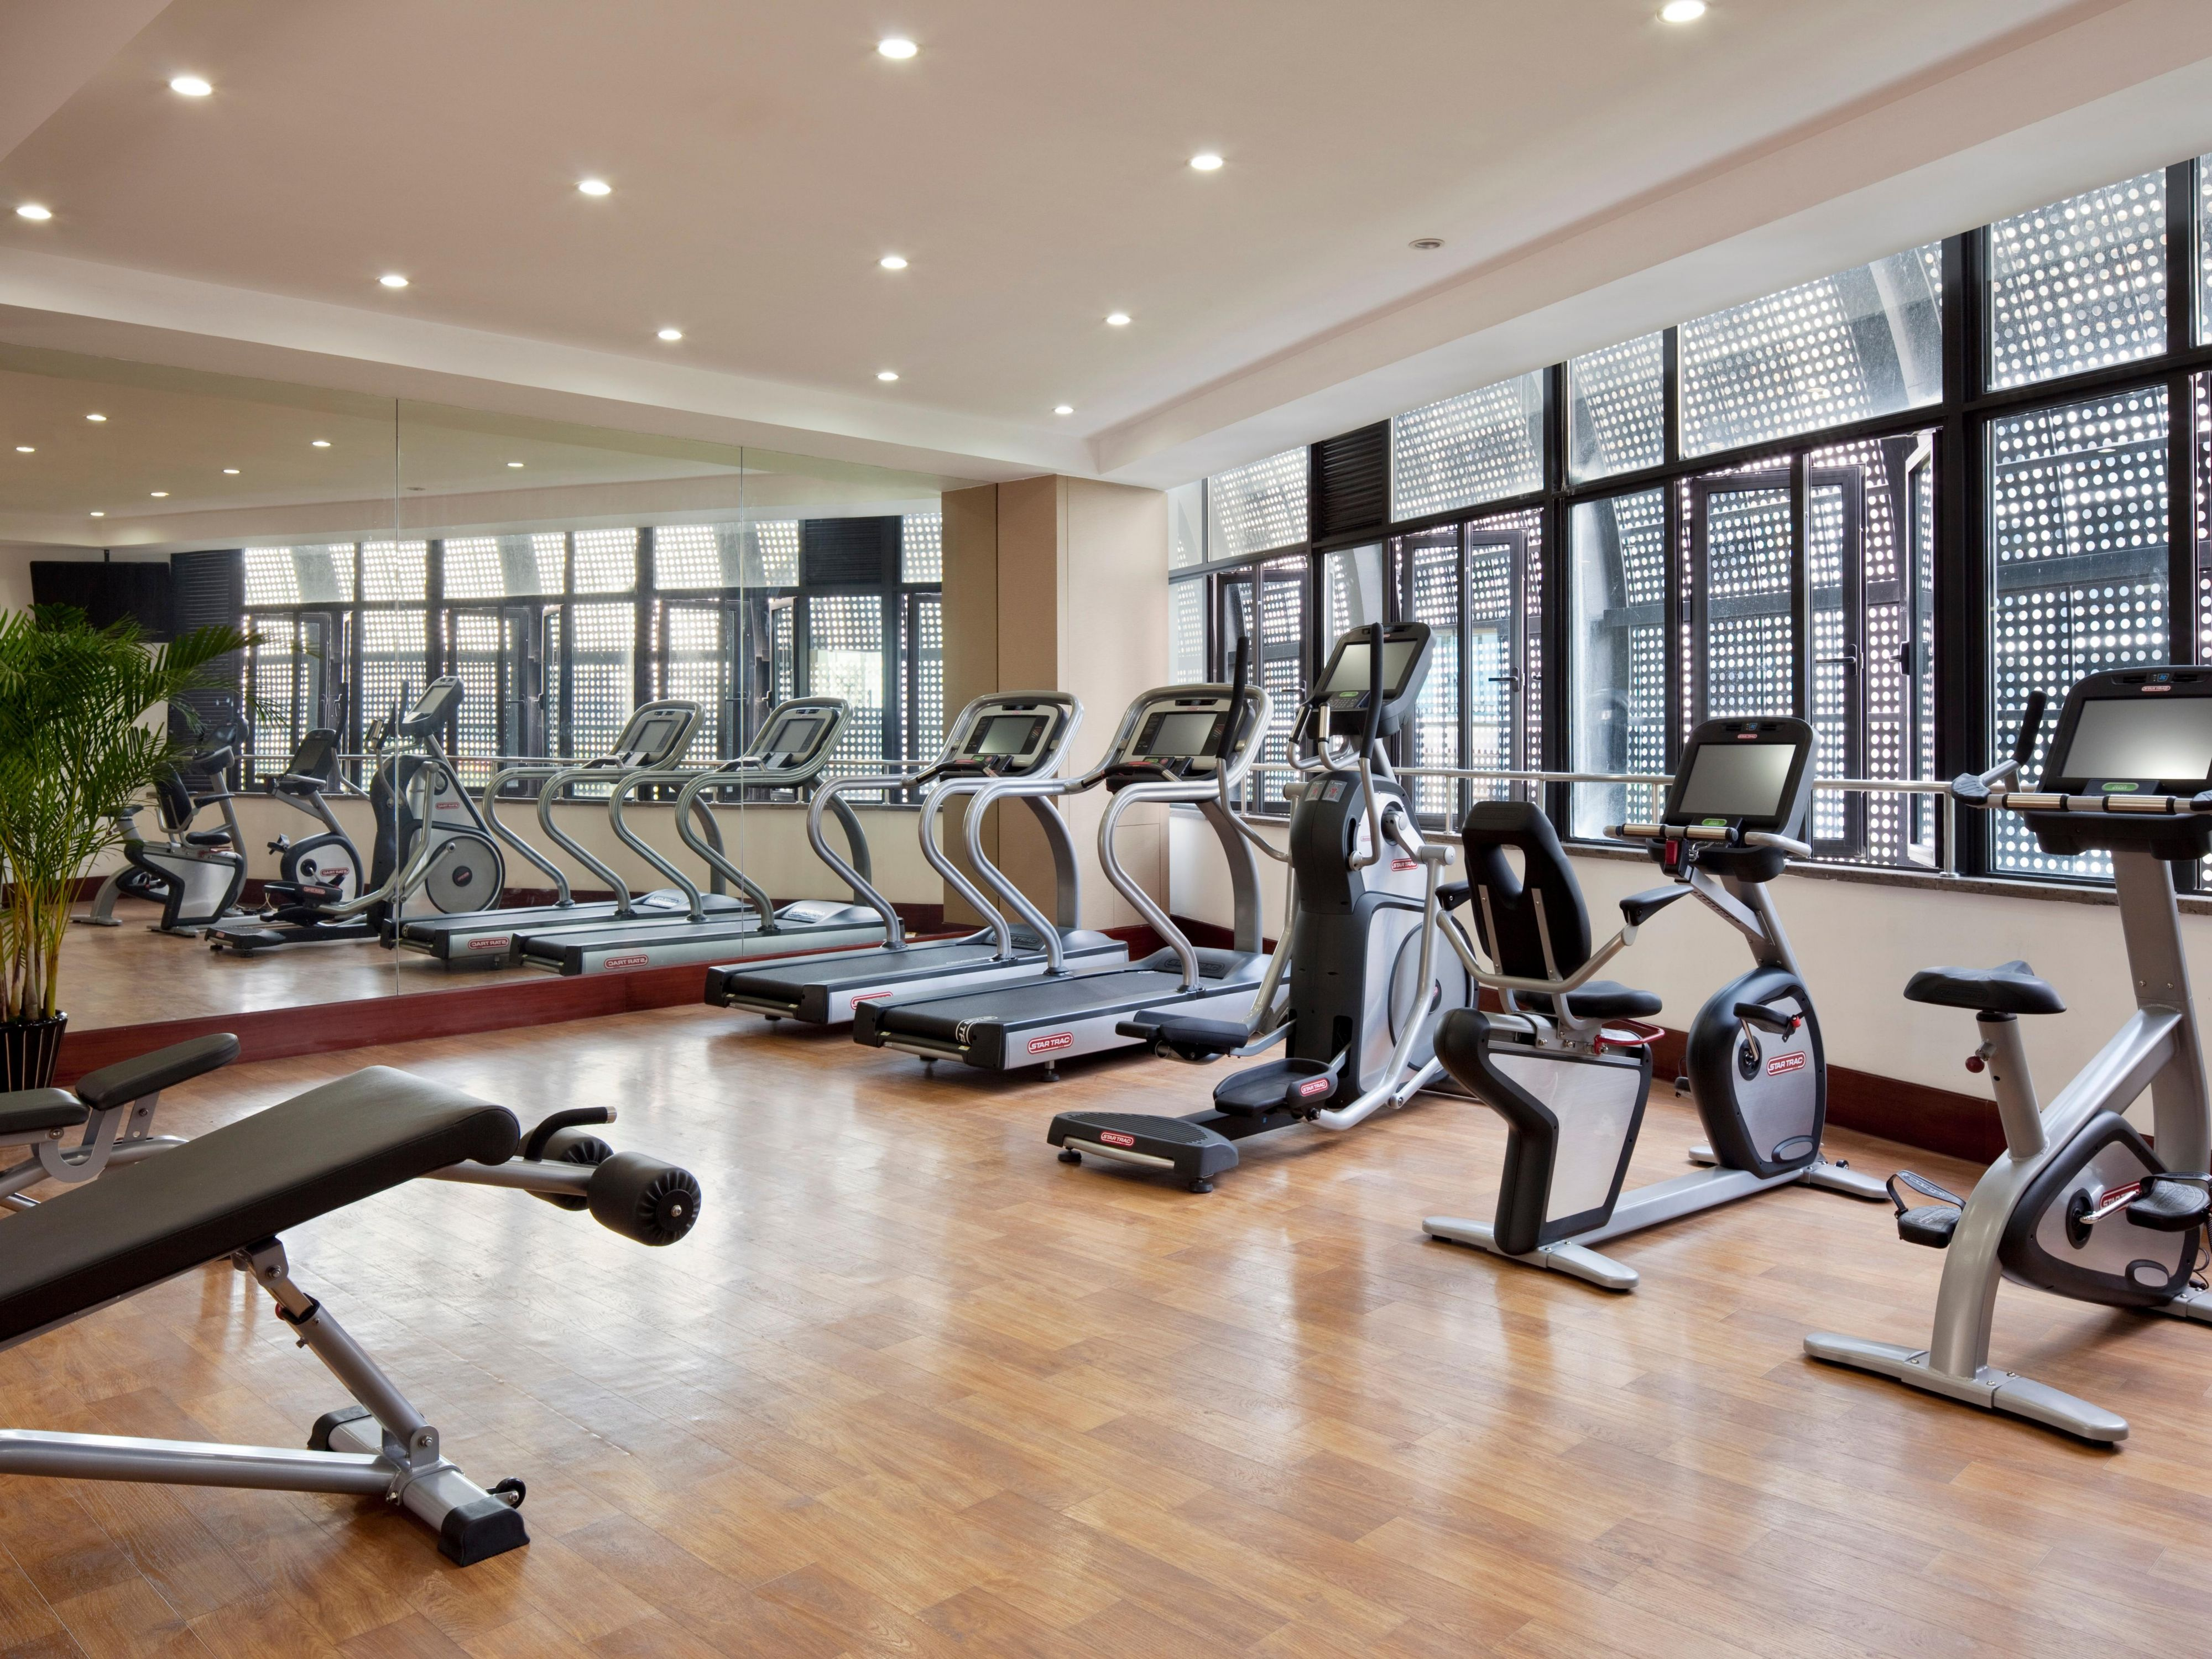 State-of-the-art equipments for a complete workout.